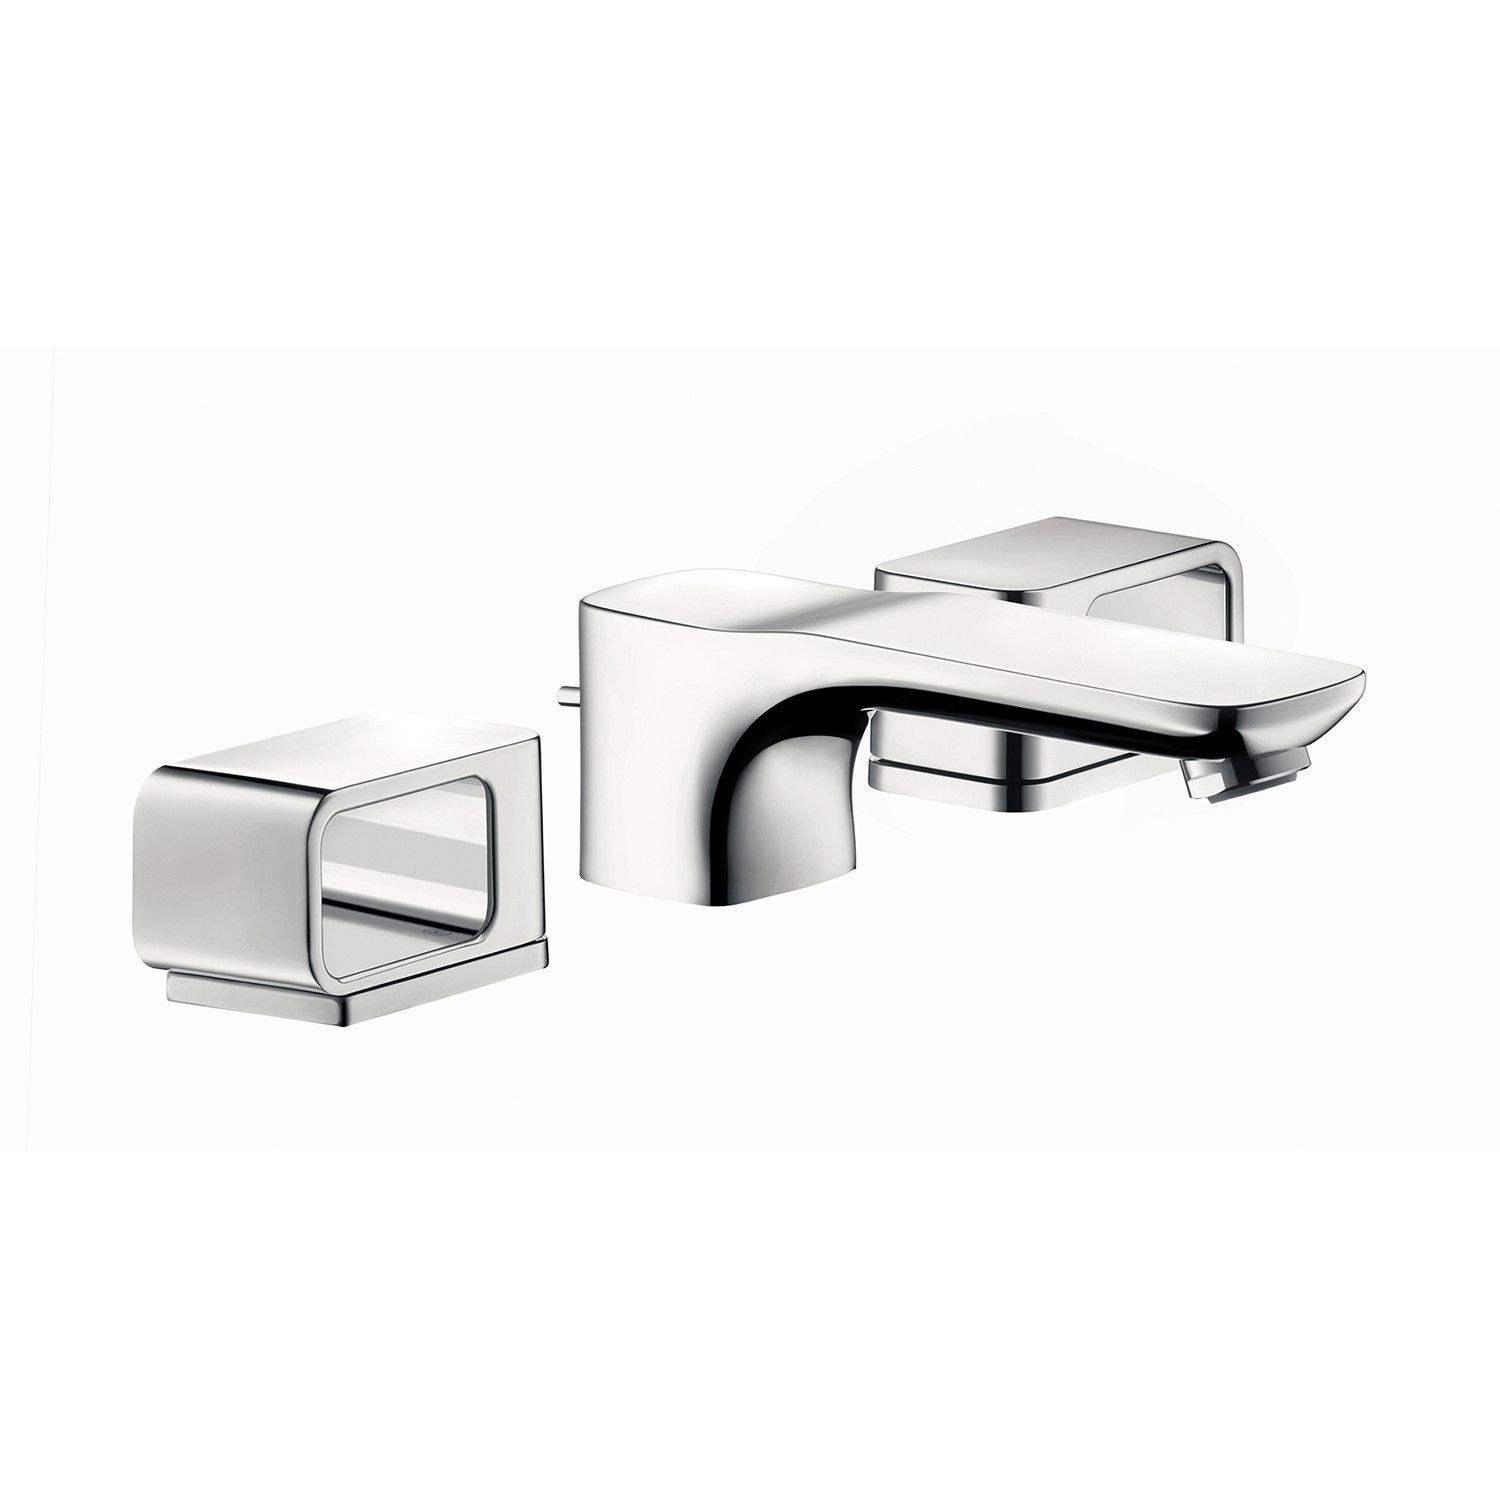 Hansgrohe Axor 11041001 Chrome Urquiola Bathroom Faucet Widespread ...